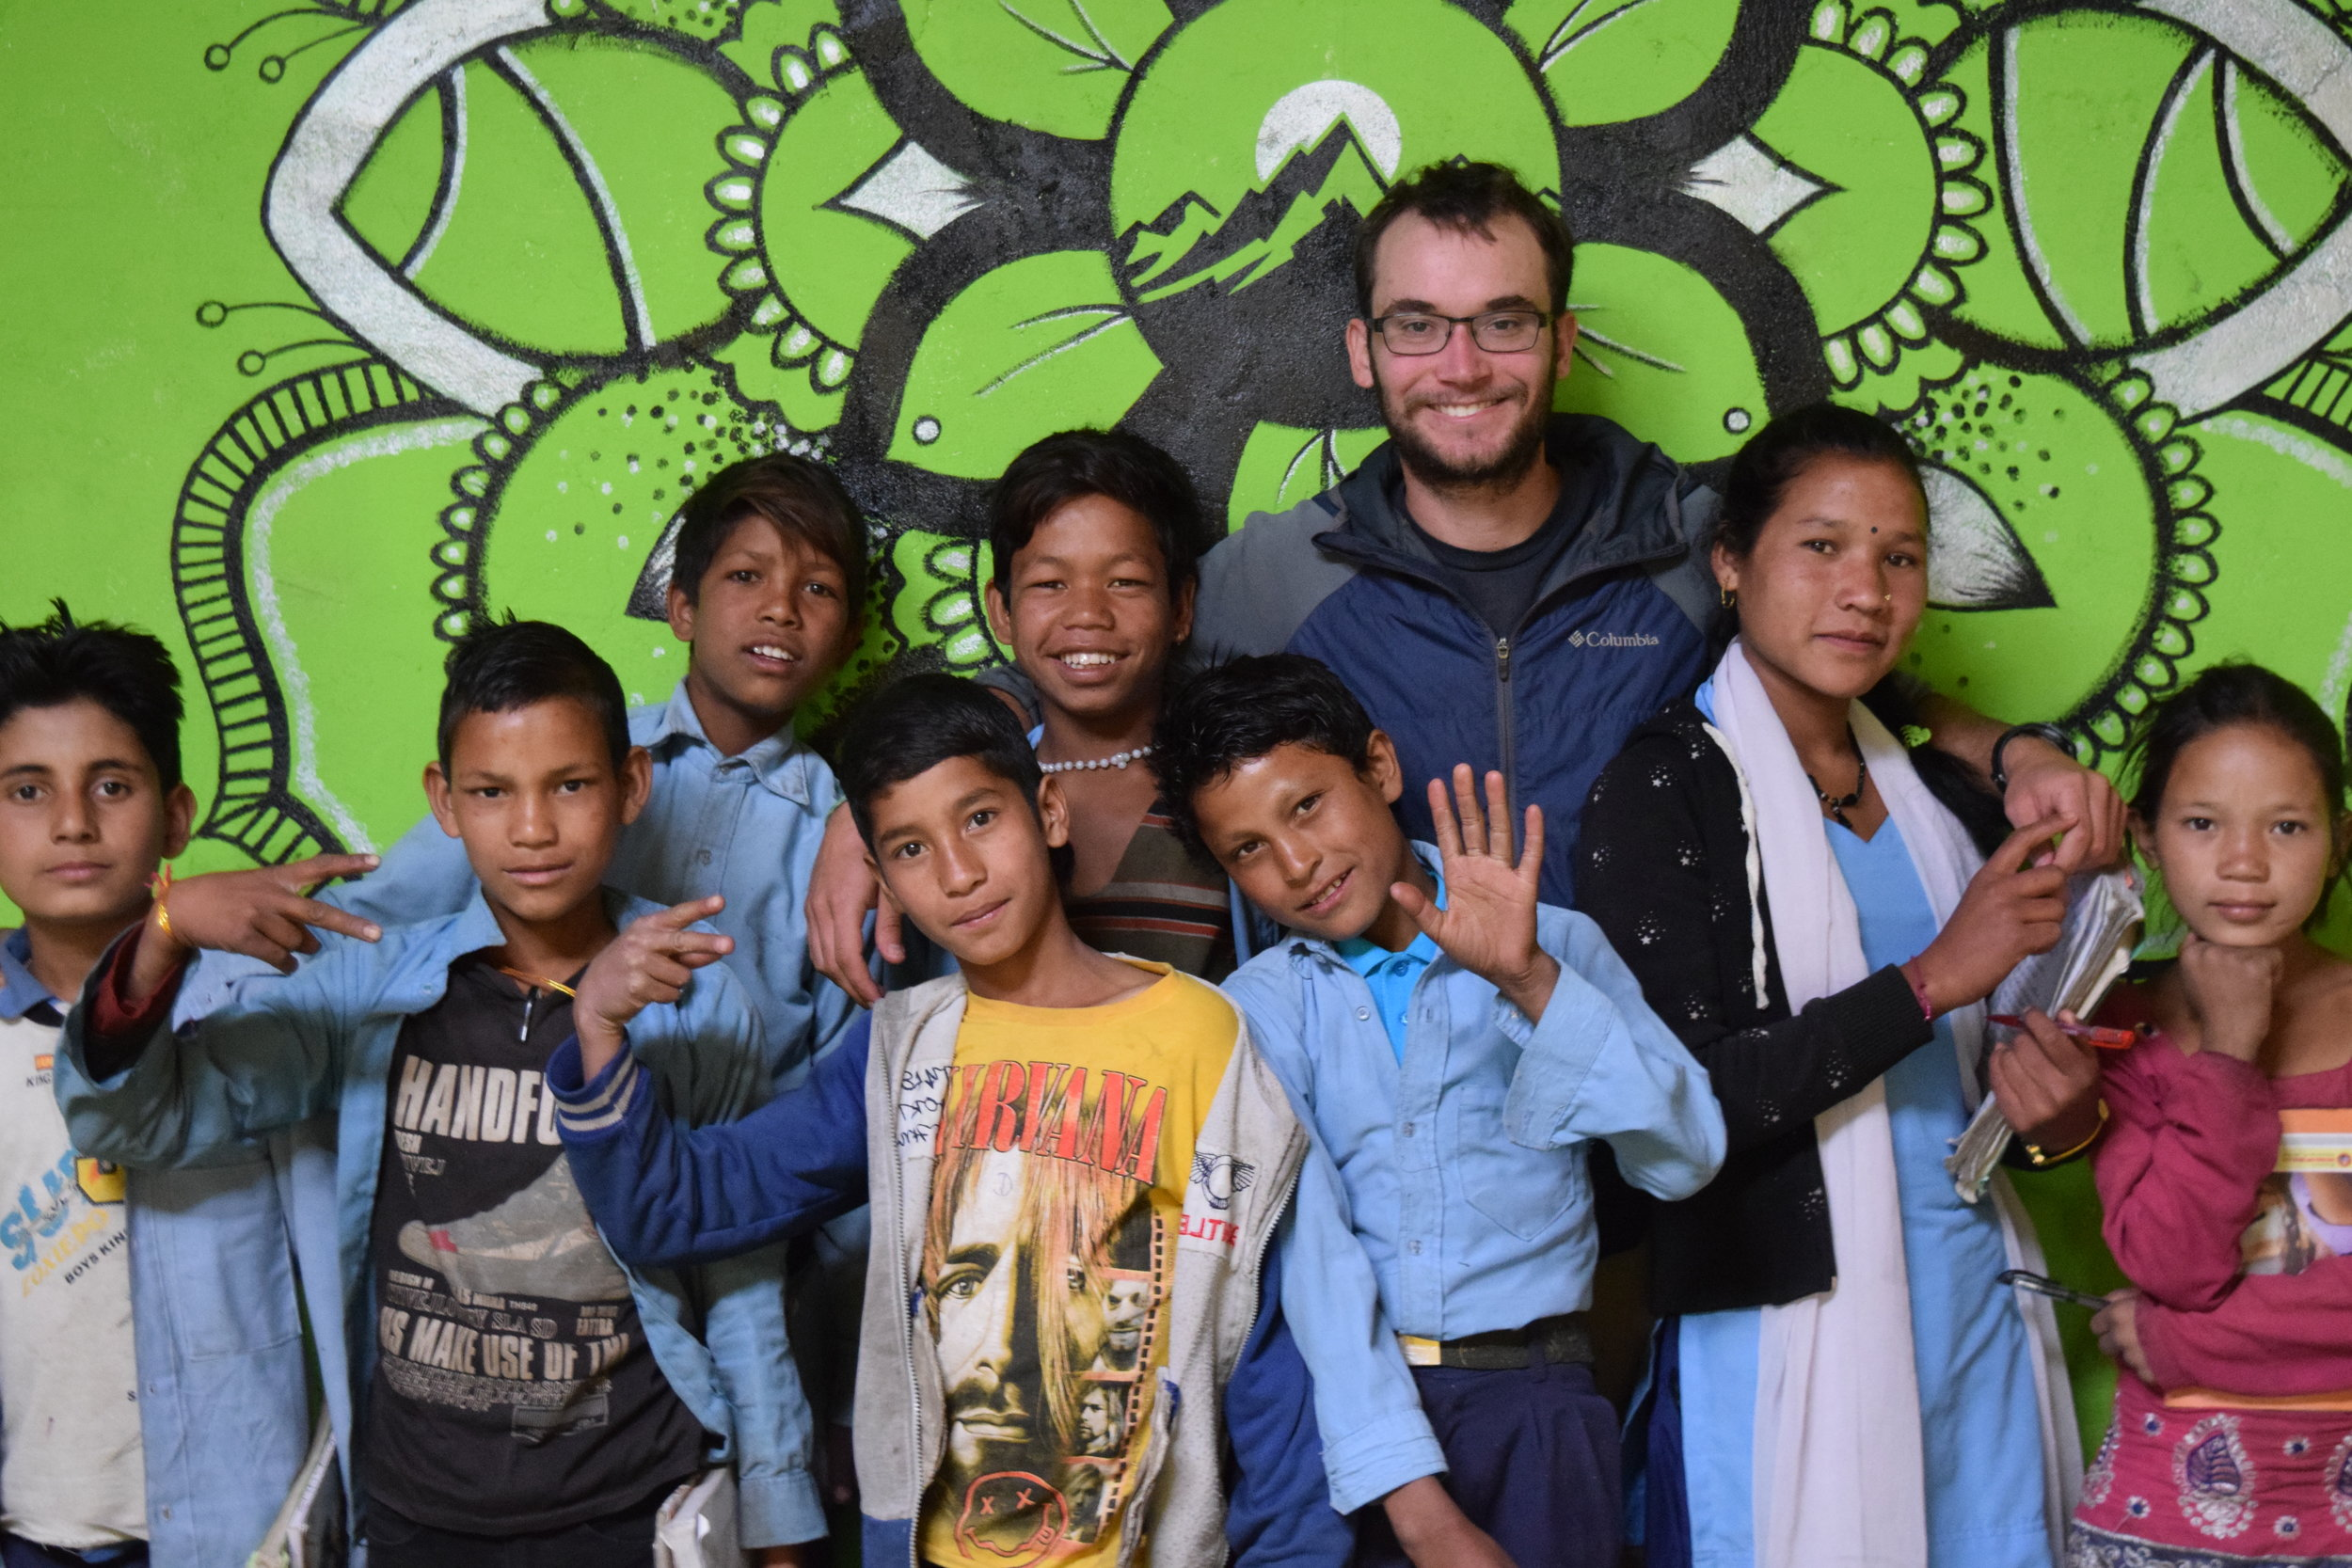 Aaron and his students in front of Taylor's mural at the government school